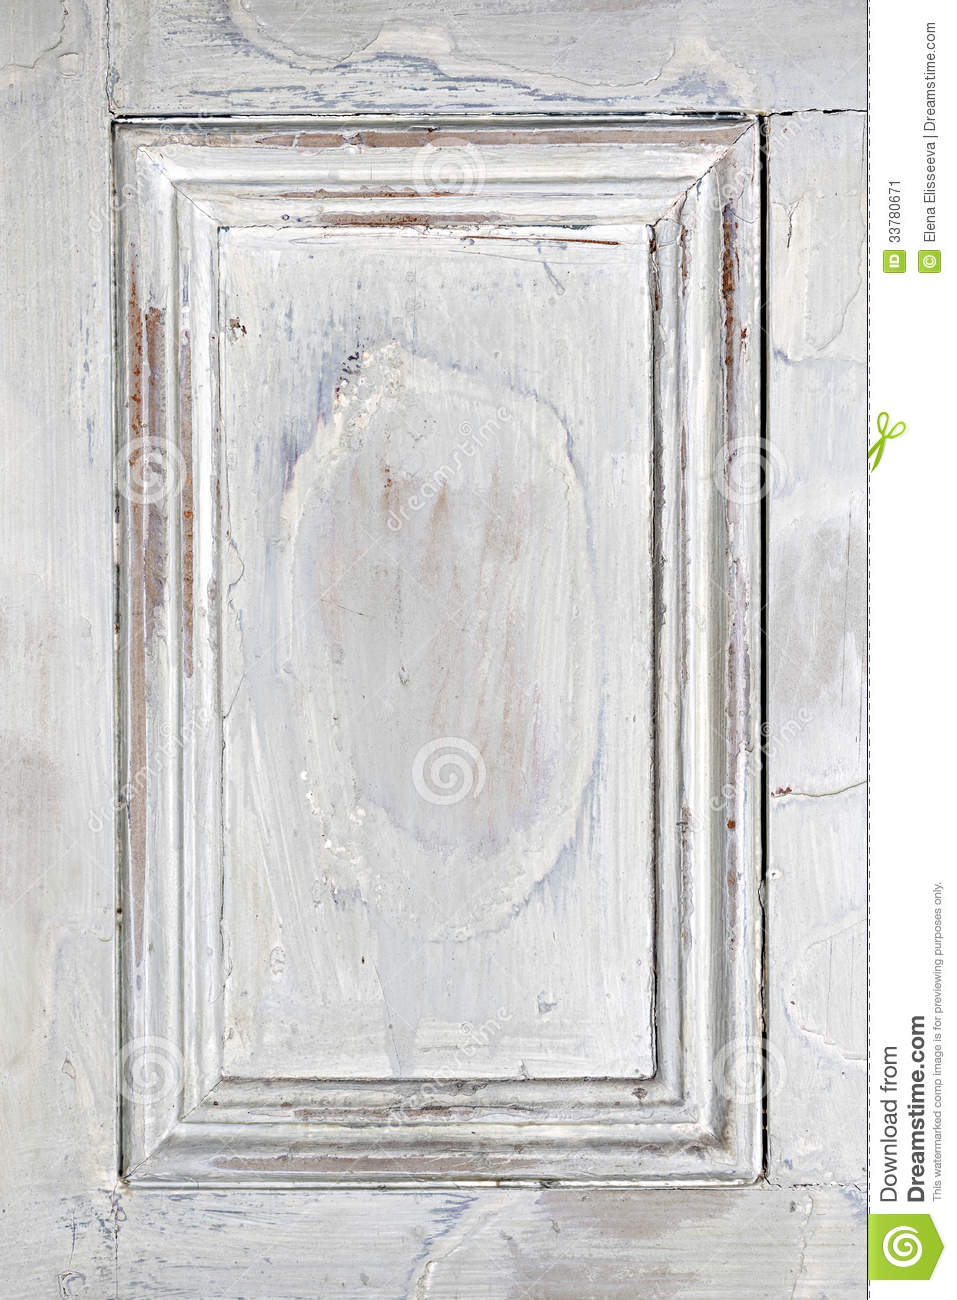 Old Painted Wood Background With Frame Stock Image - Image of brown ...